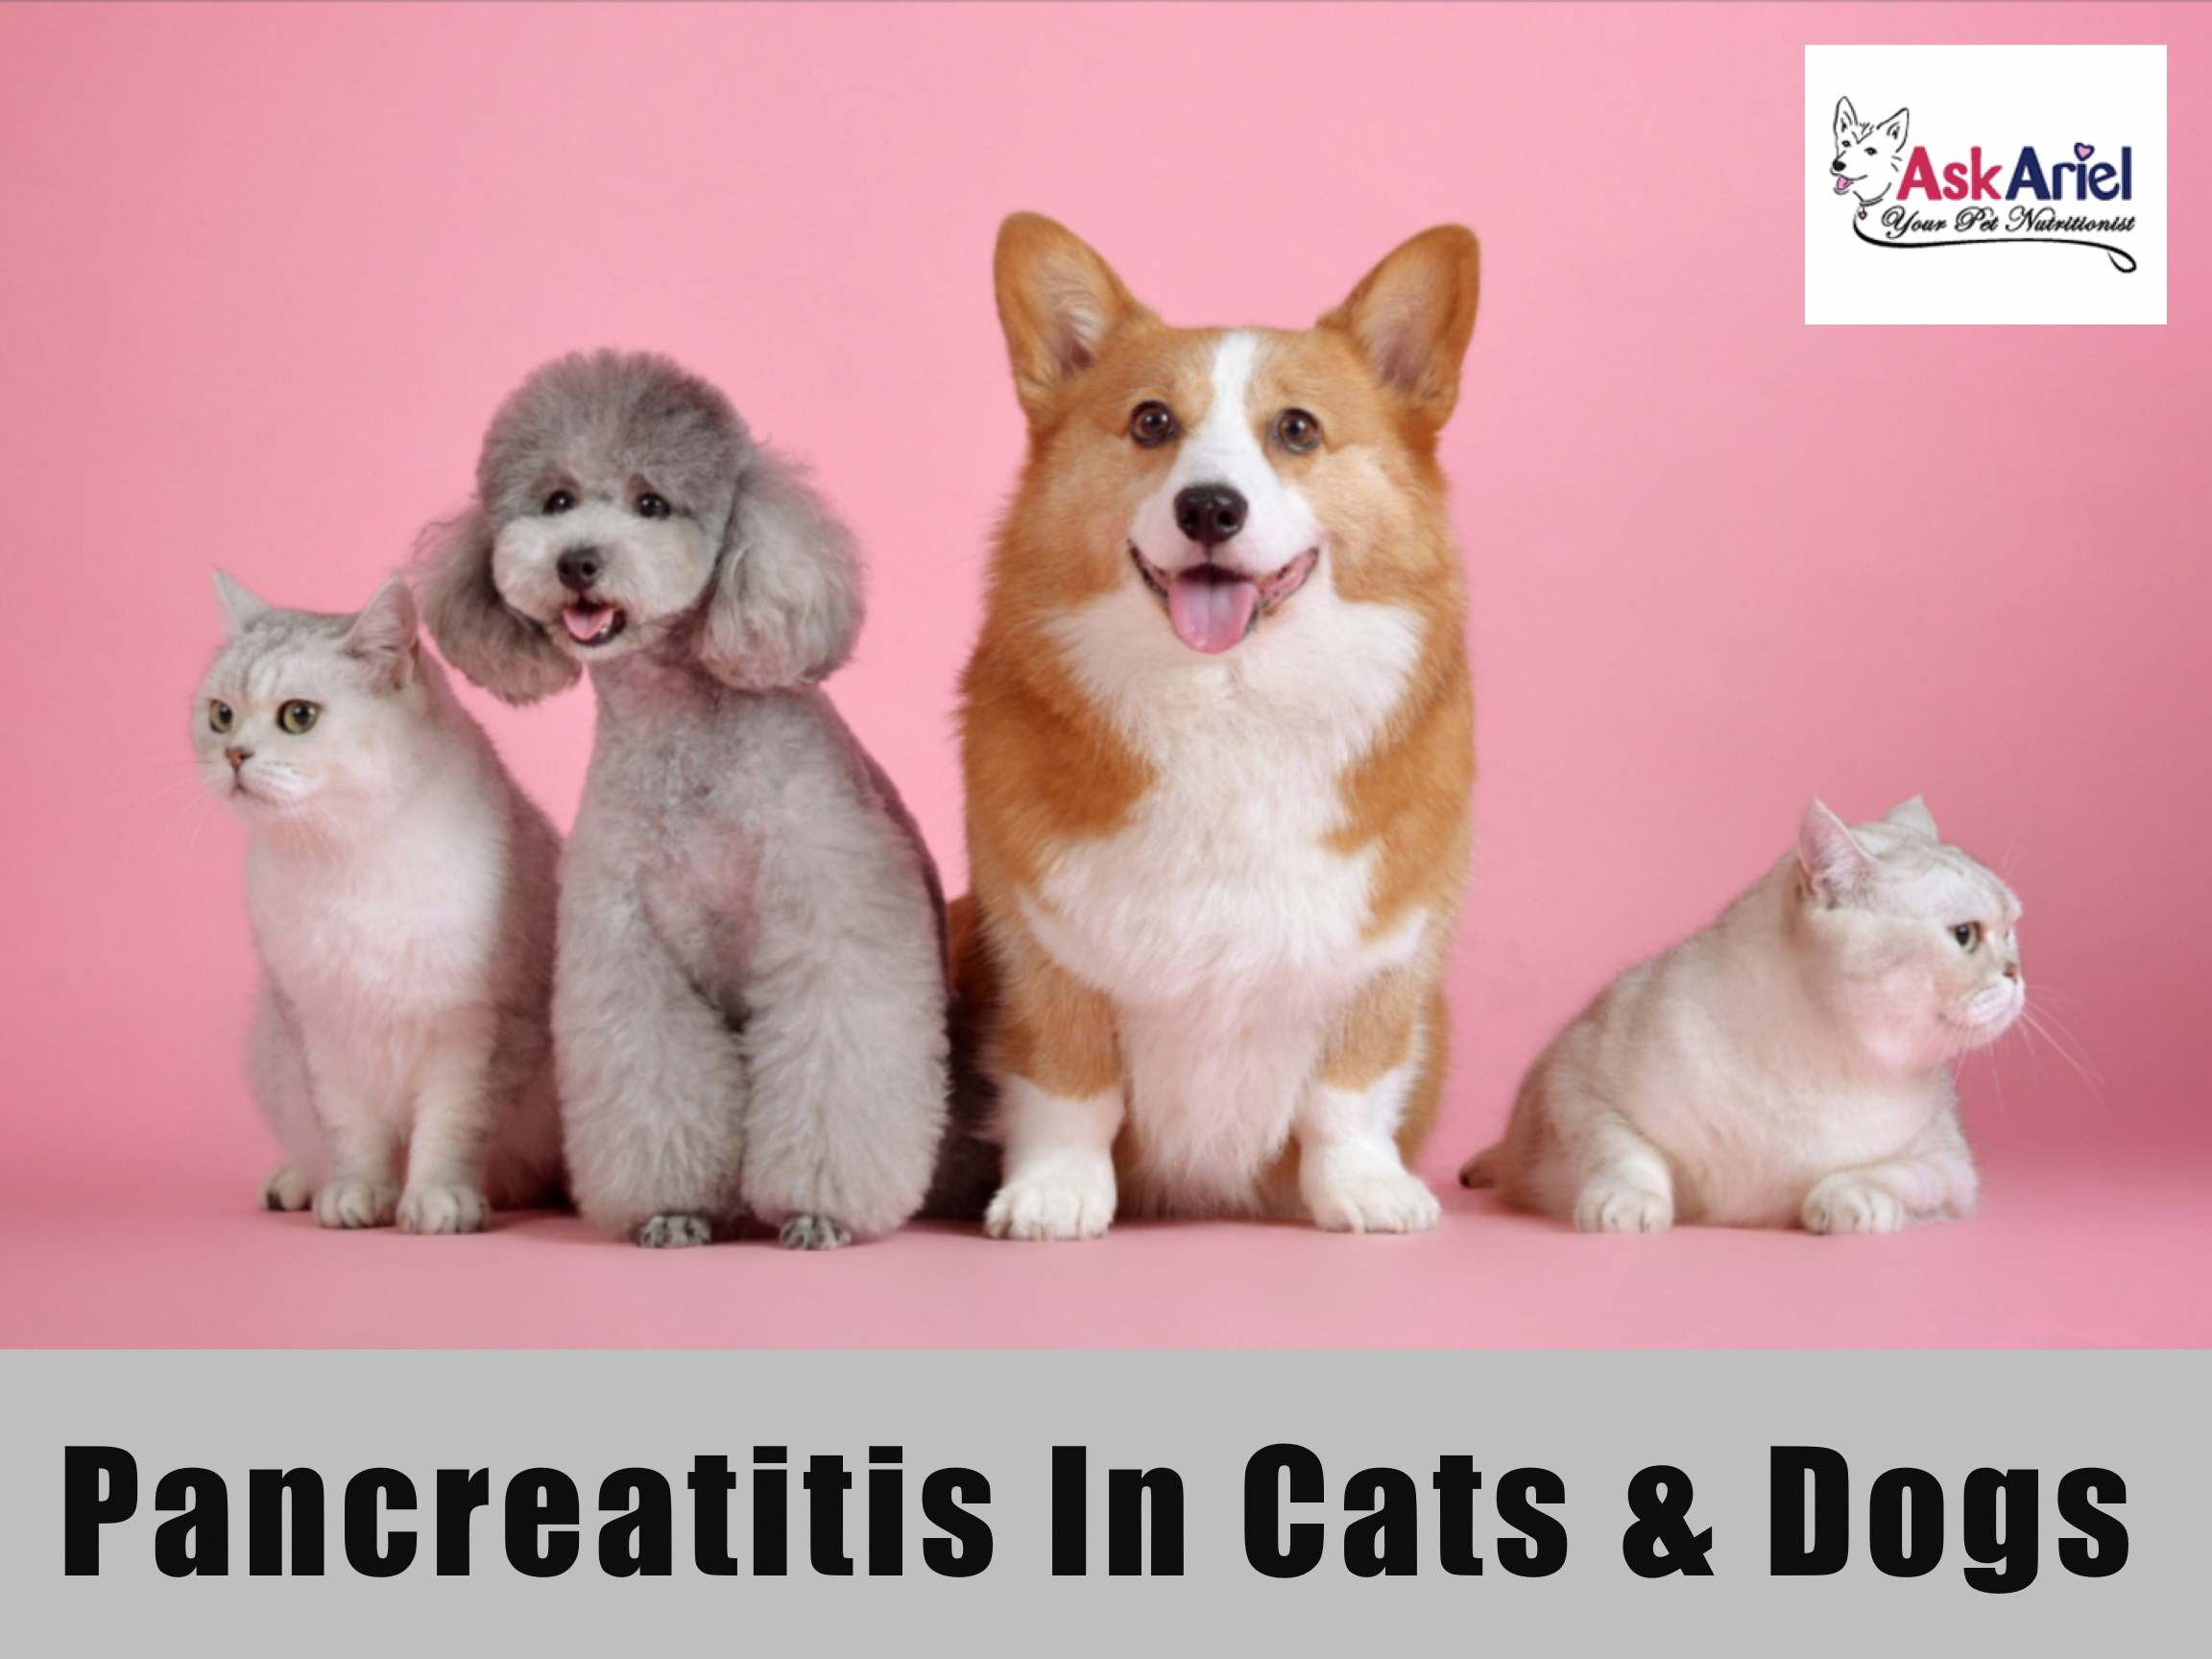 Chronic canine and feline pancreatitis is more common than